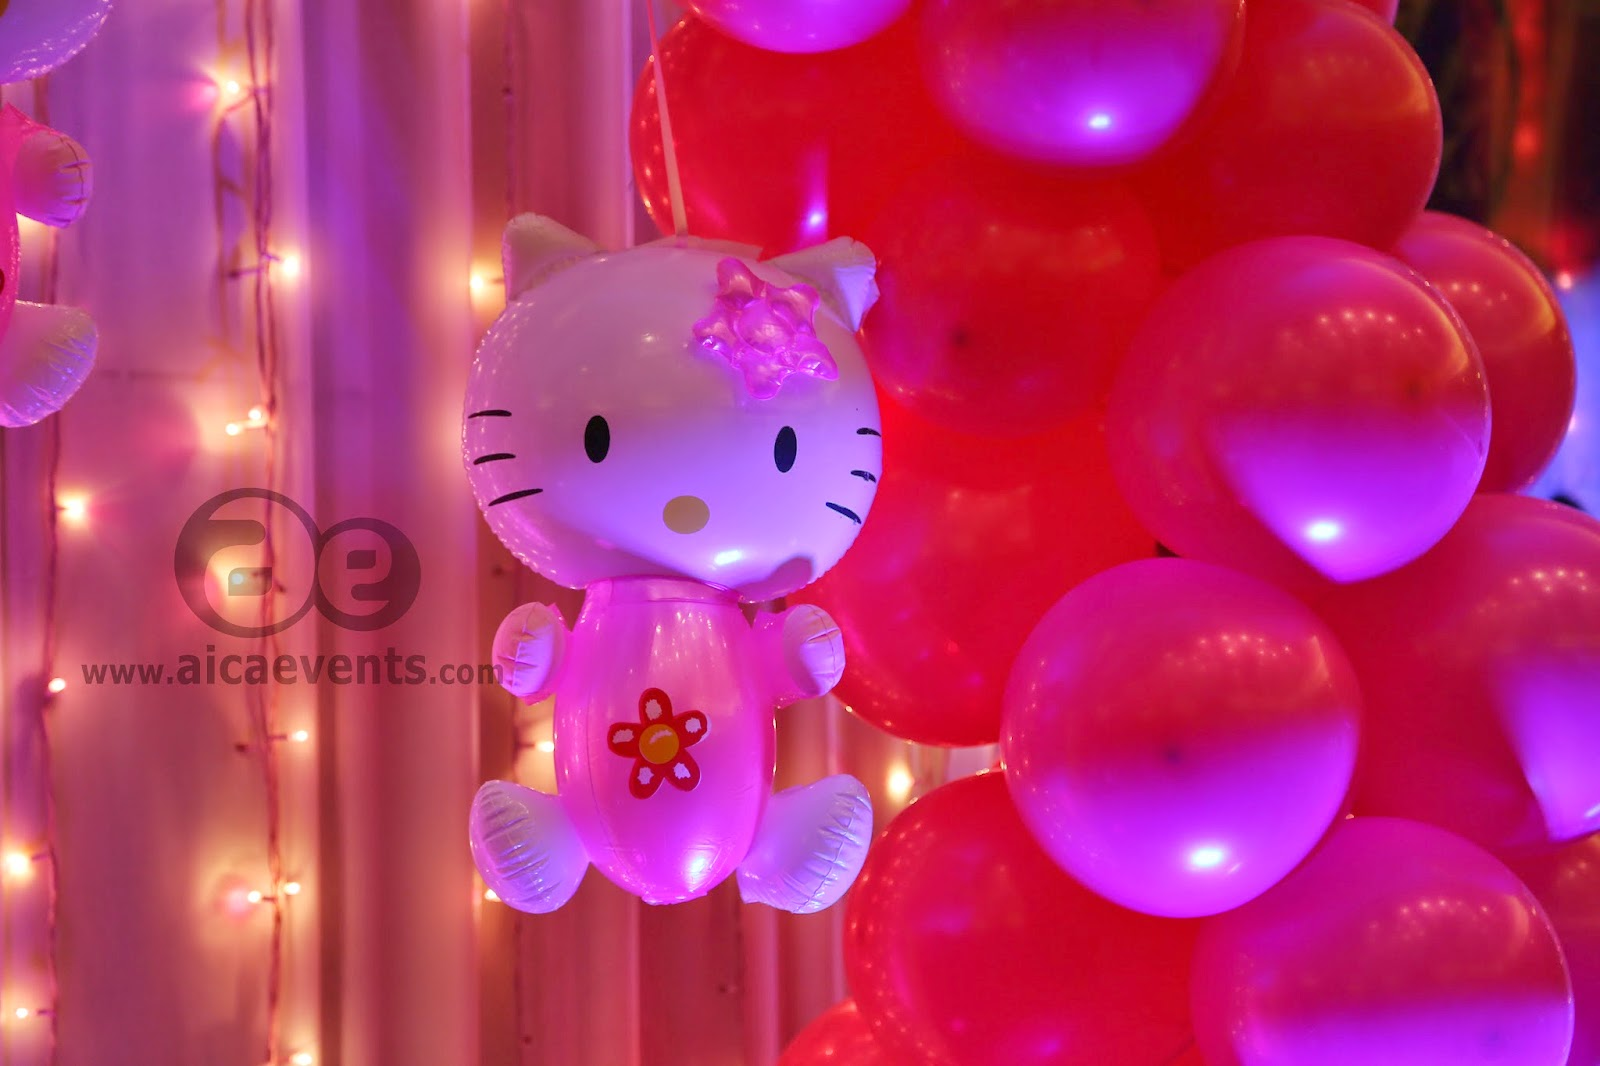 aicaevents Kitty Theme Birthday party for Baby Girls